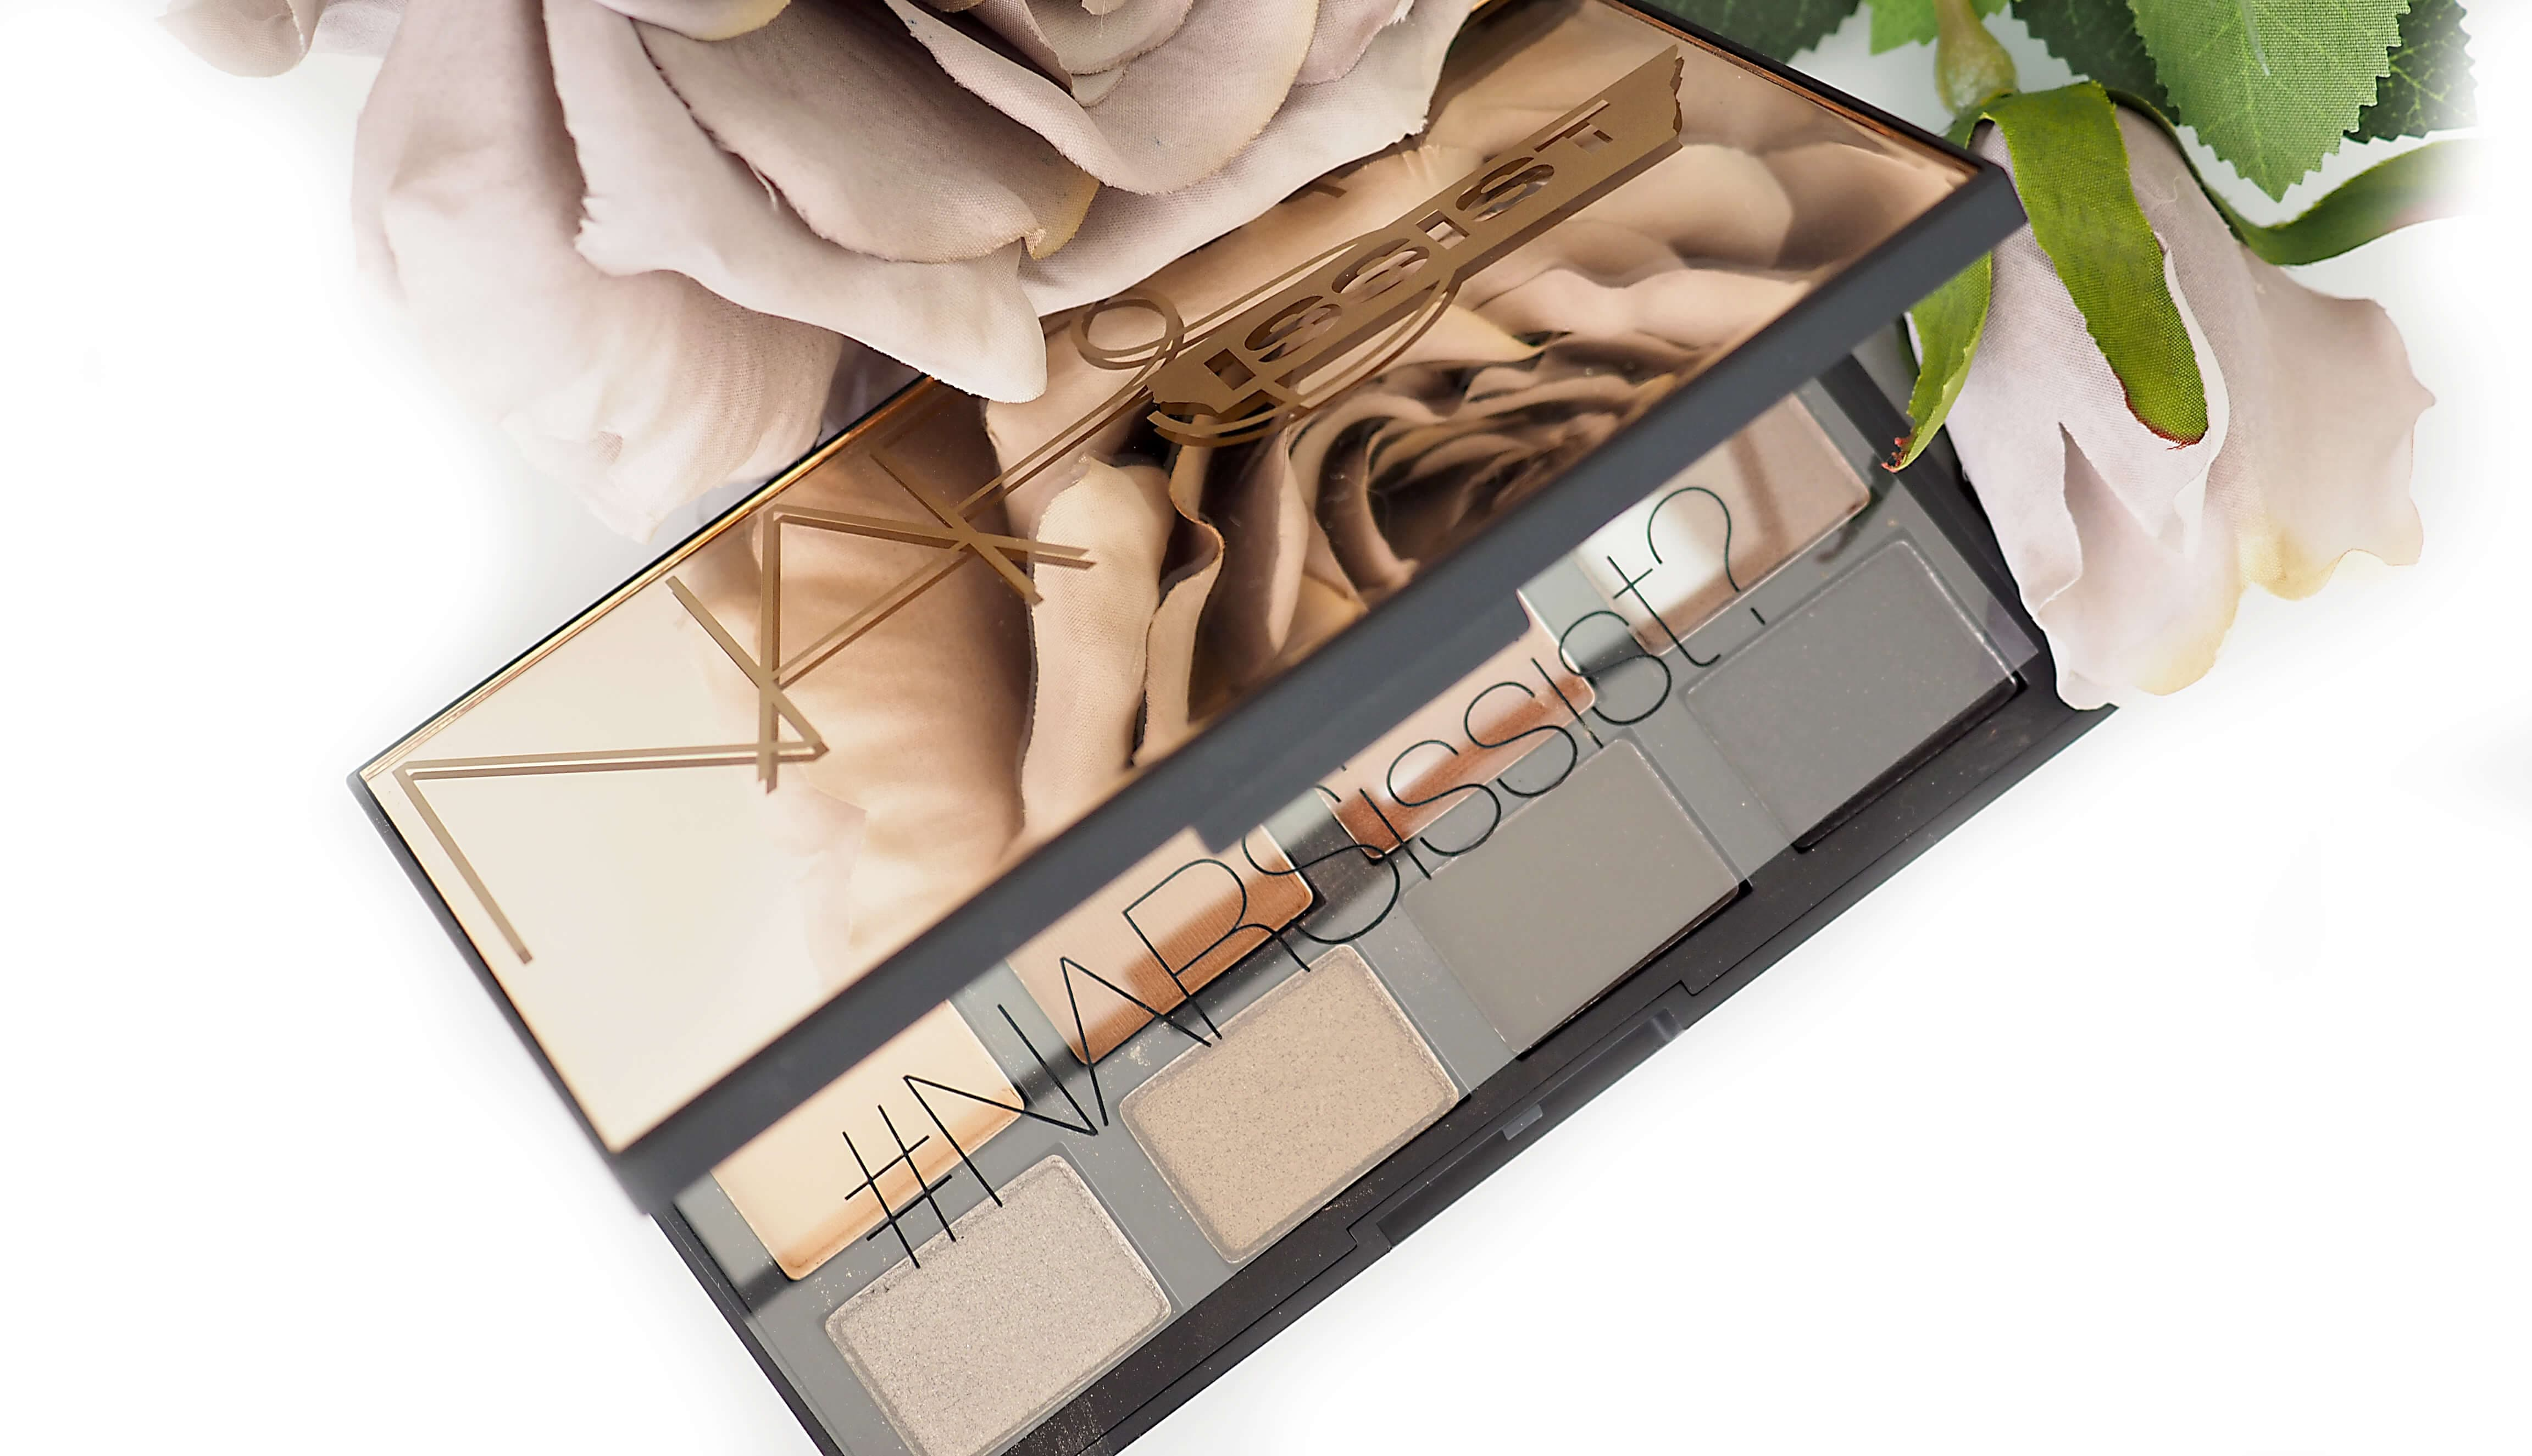 Opinia NARSissist LOADED EYESHADOW PALETTE